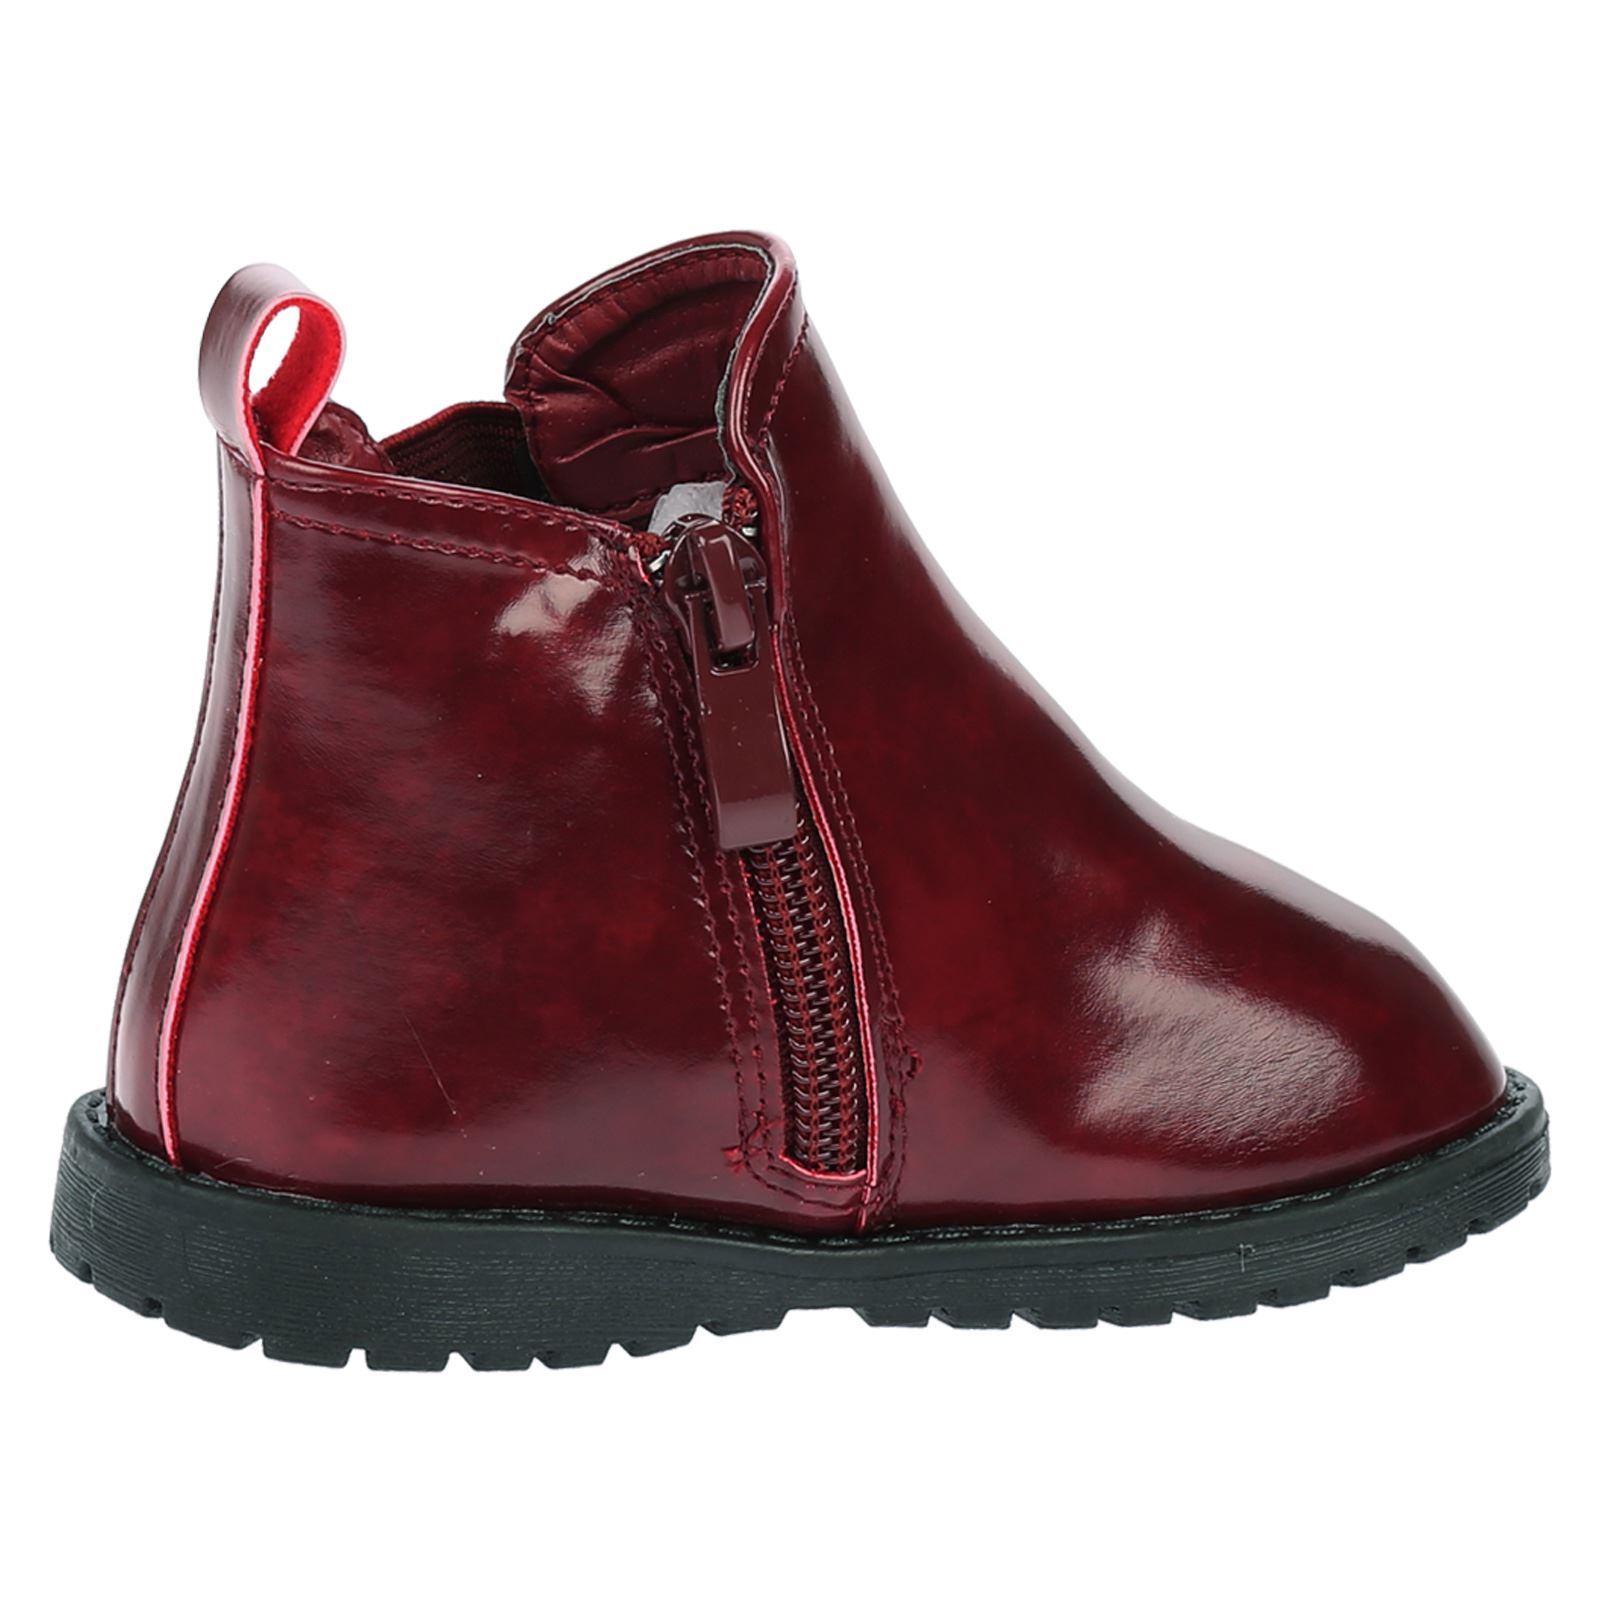 NEW GIRLS ANKLE BOOTS SHOES KIDS AUTUMN WINTER TODDLER